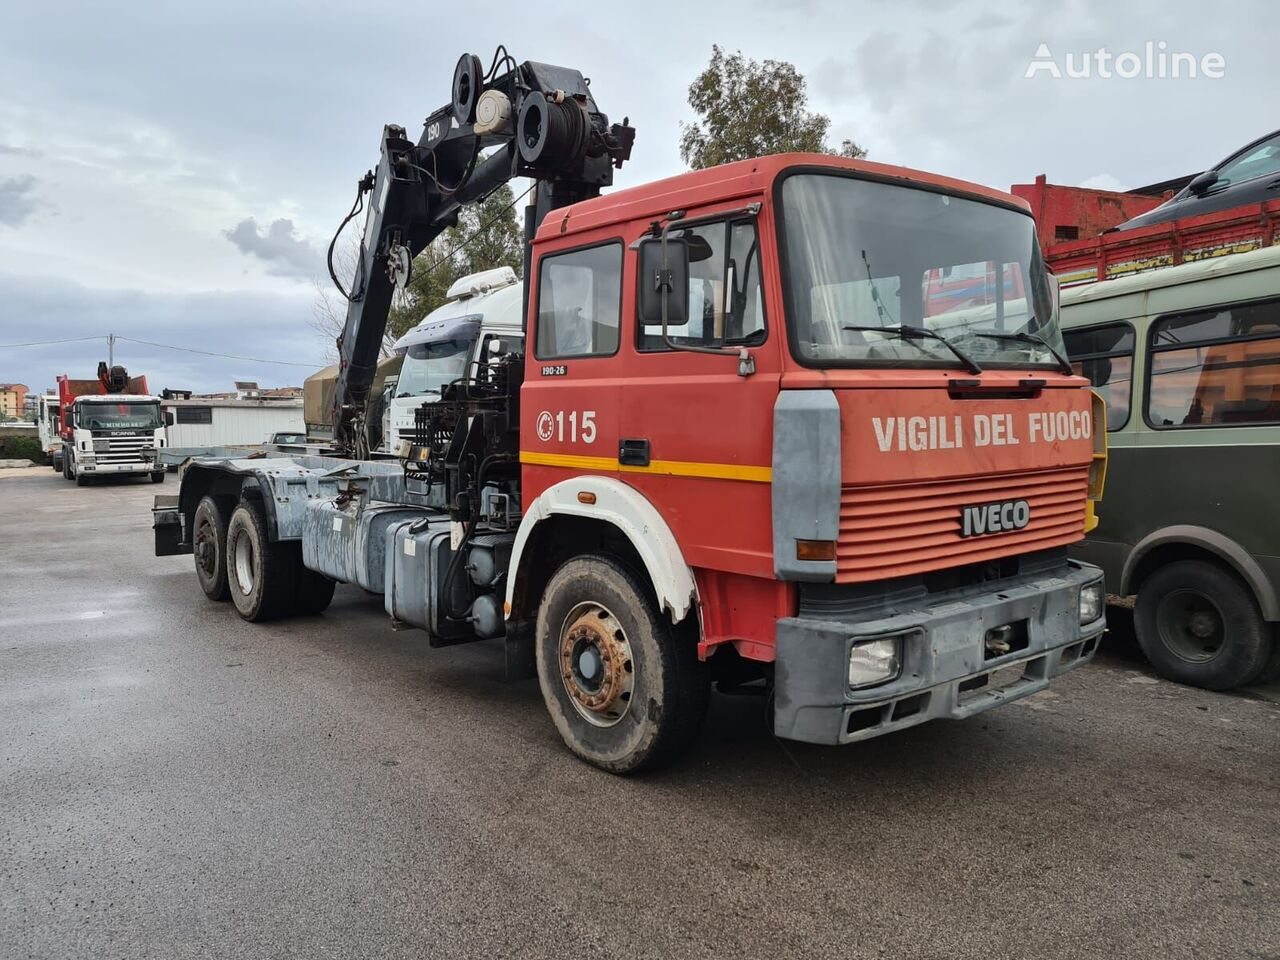 IVECO 190.26 chassis truck